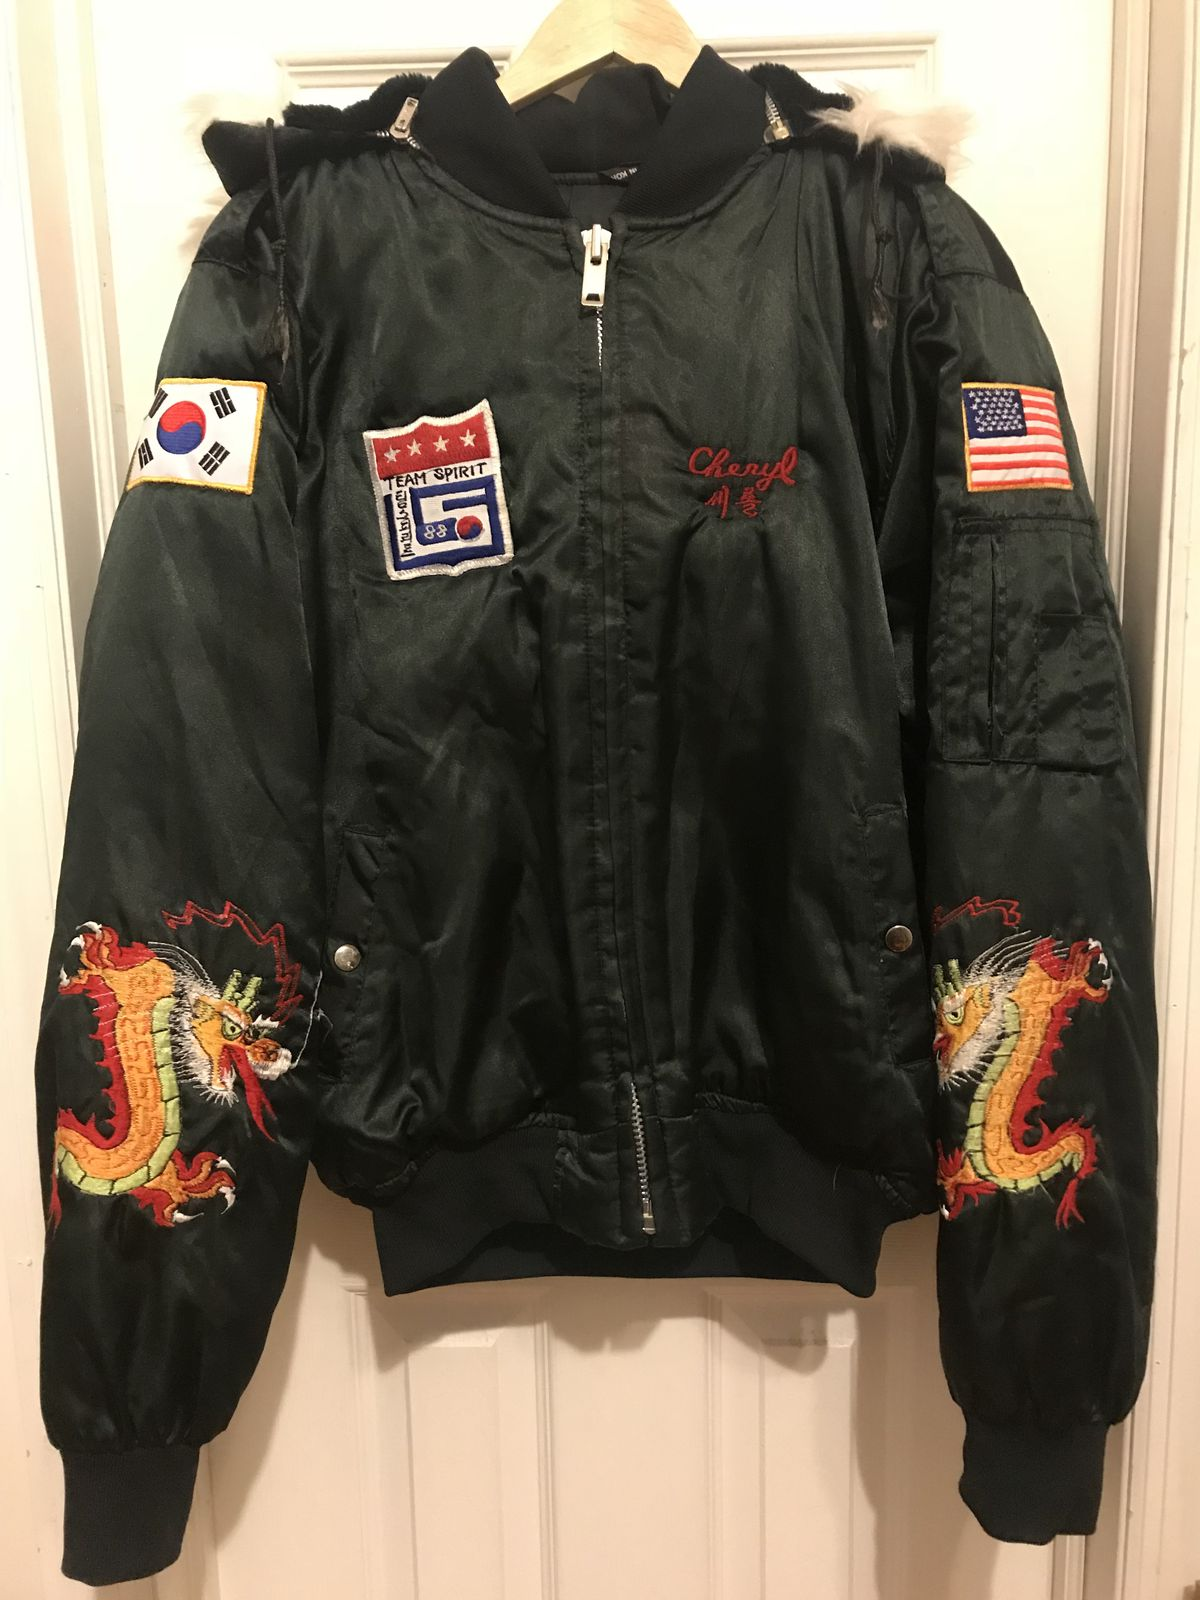 A bomber jacket from the 1988 Olympics in Seoul, South Korea.